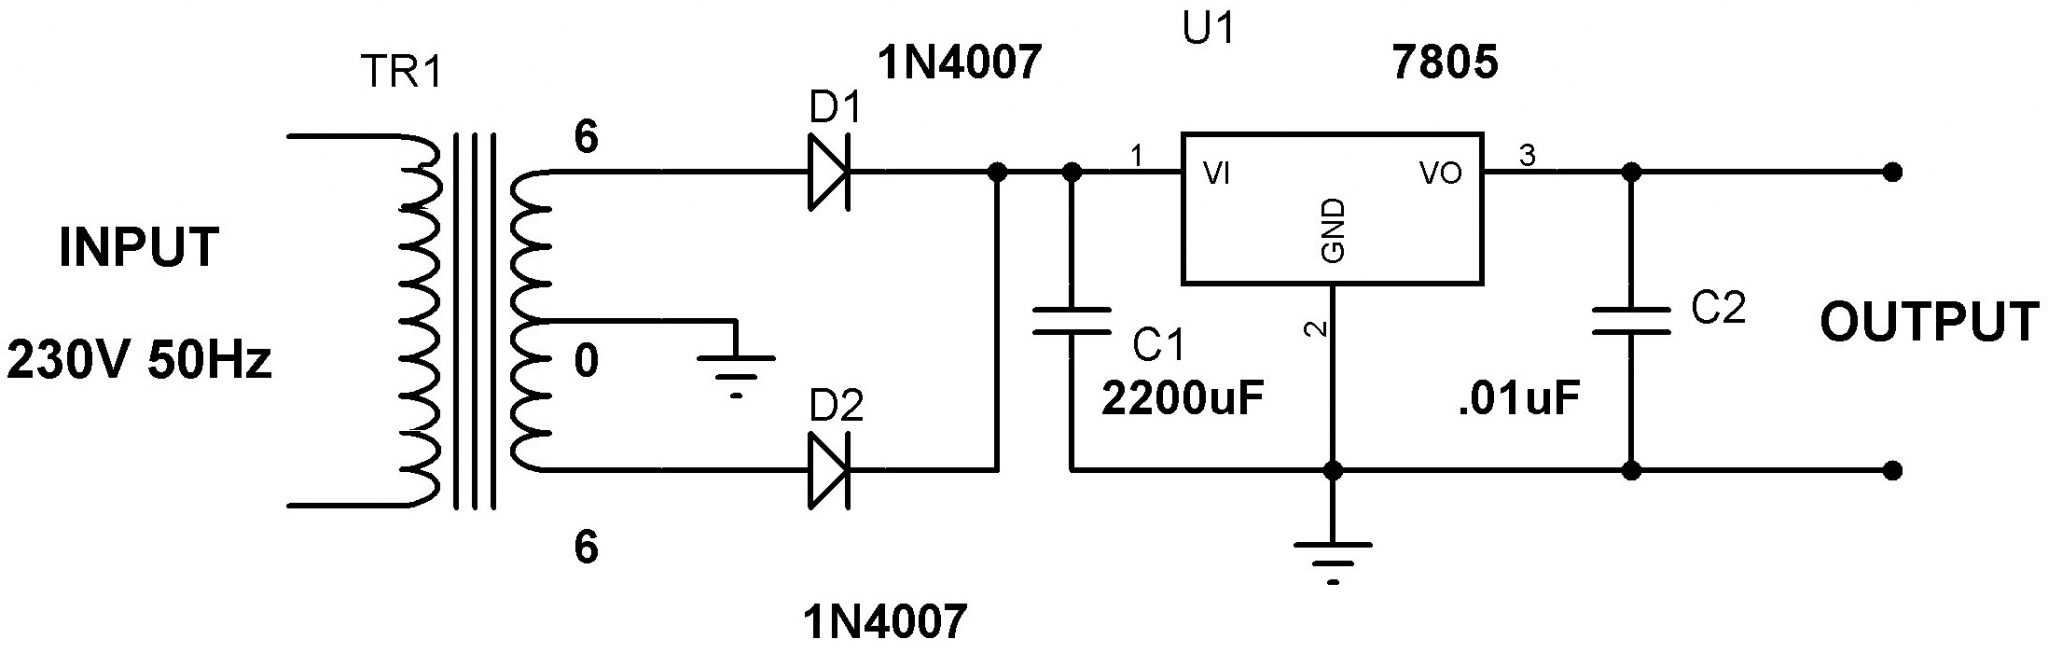 5v power supply using 7805 voltage regulator with design rh electrosome com